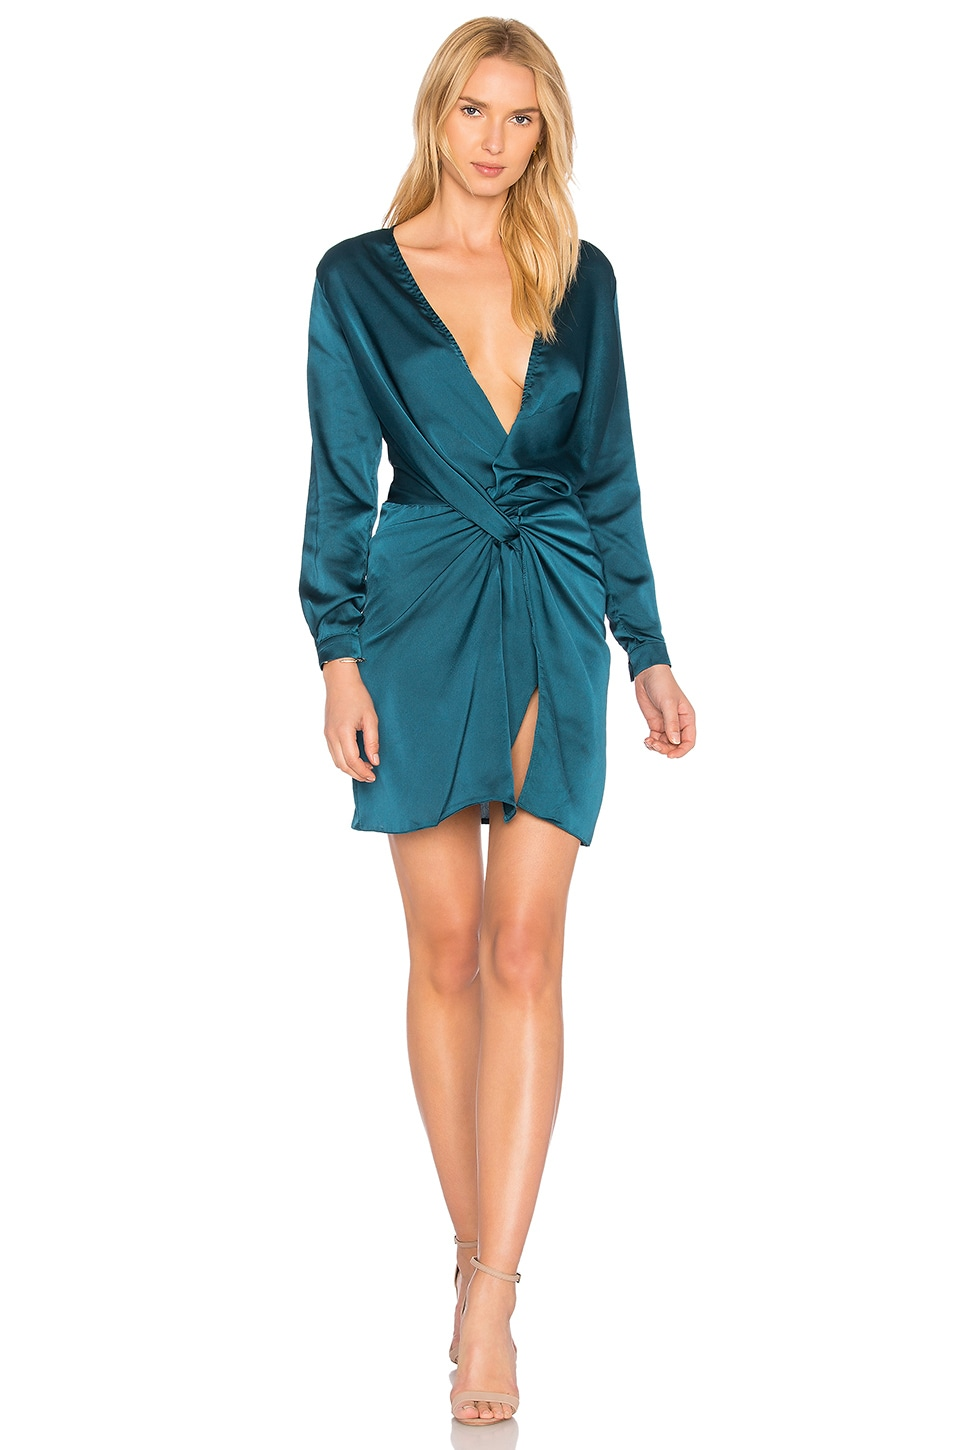 LIONESS Fame and Lust Dress in Teal